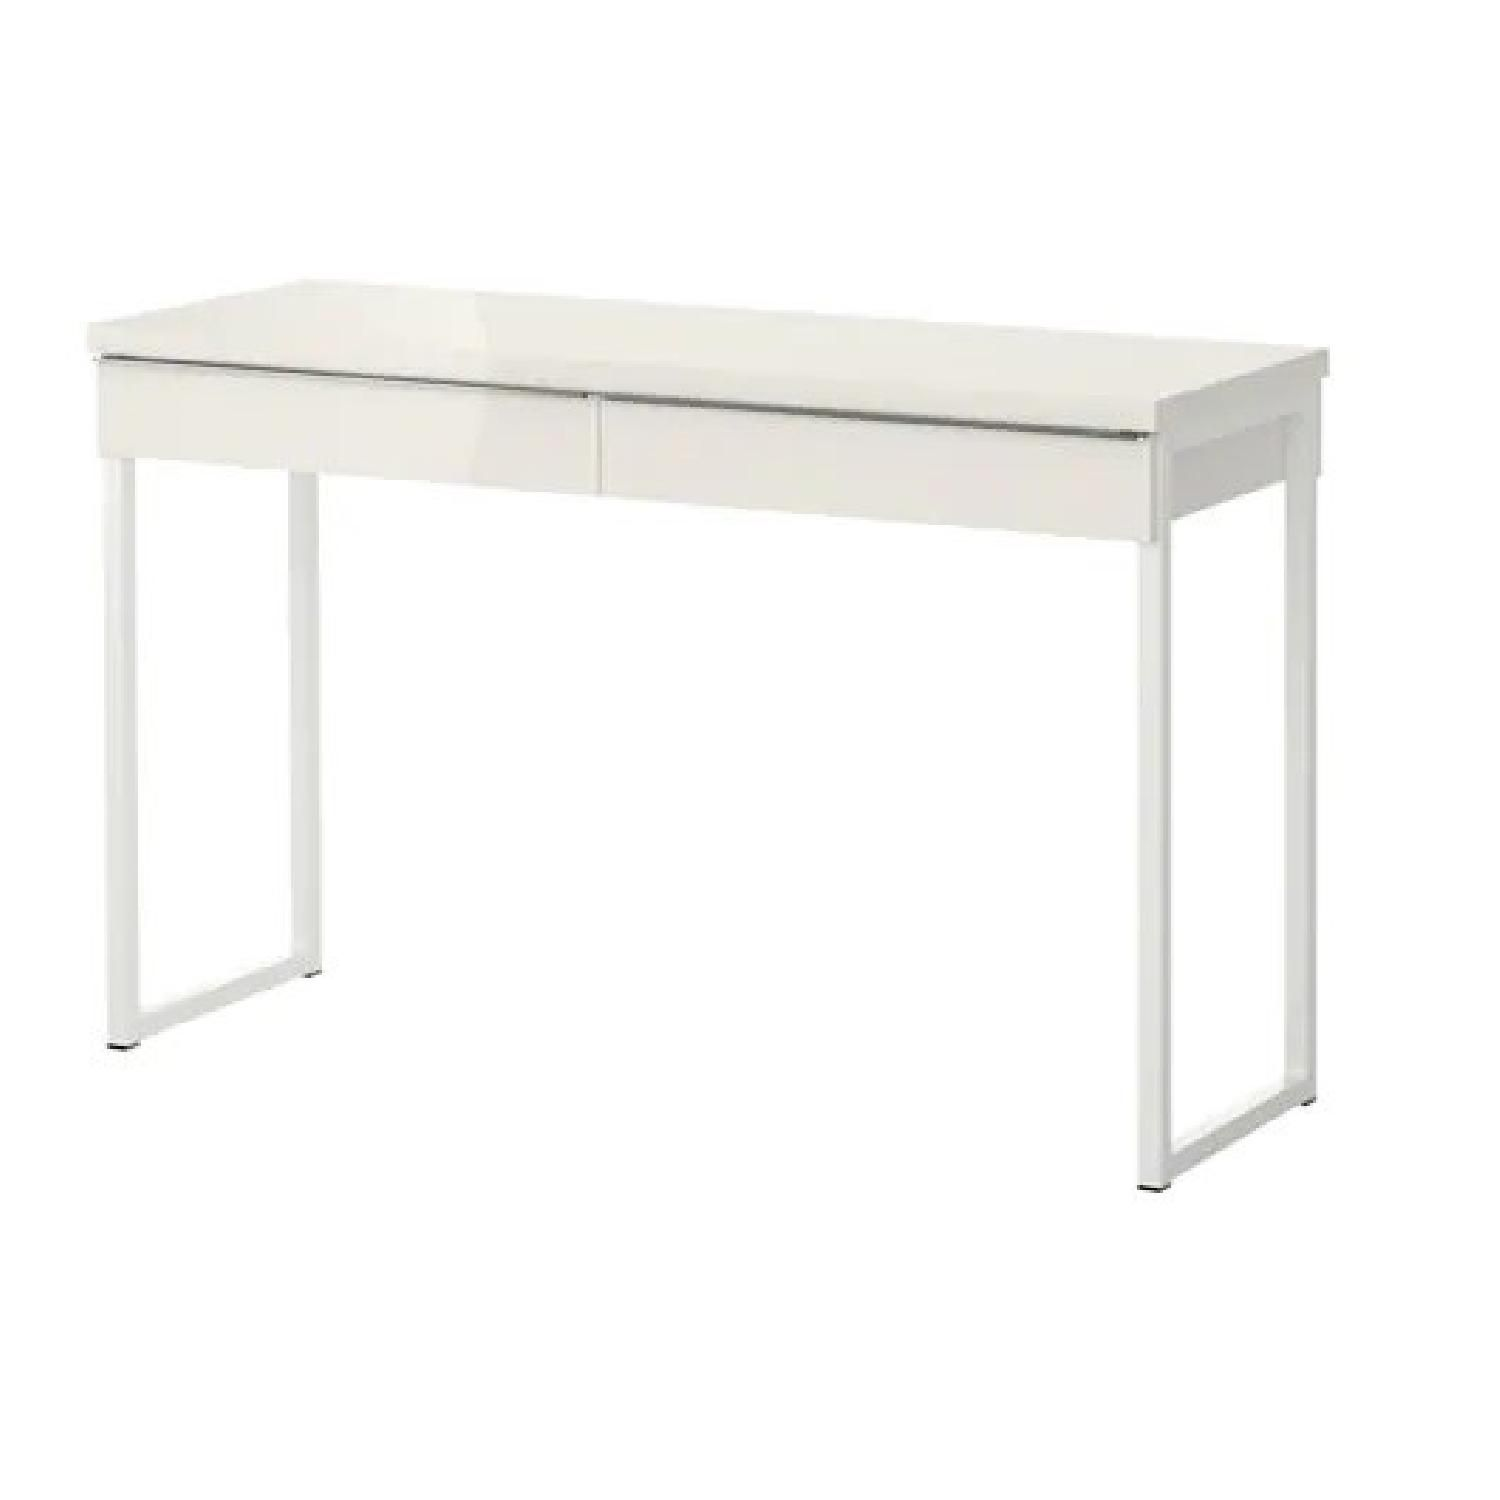 Magnificent Ikea Besta Burs White Desk Table In Satisfactory Condition Squirreltailoven Fun Painted Chair Ideas Images Squirreltailovenorg